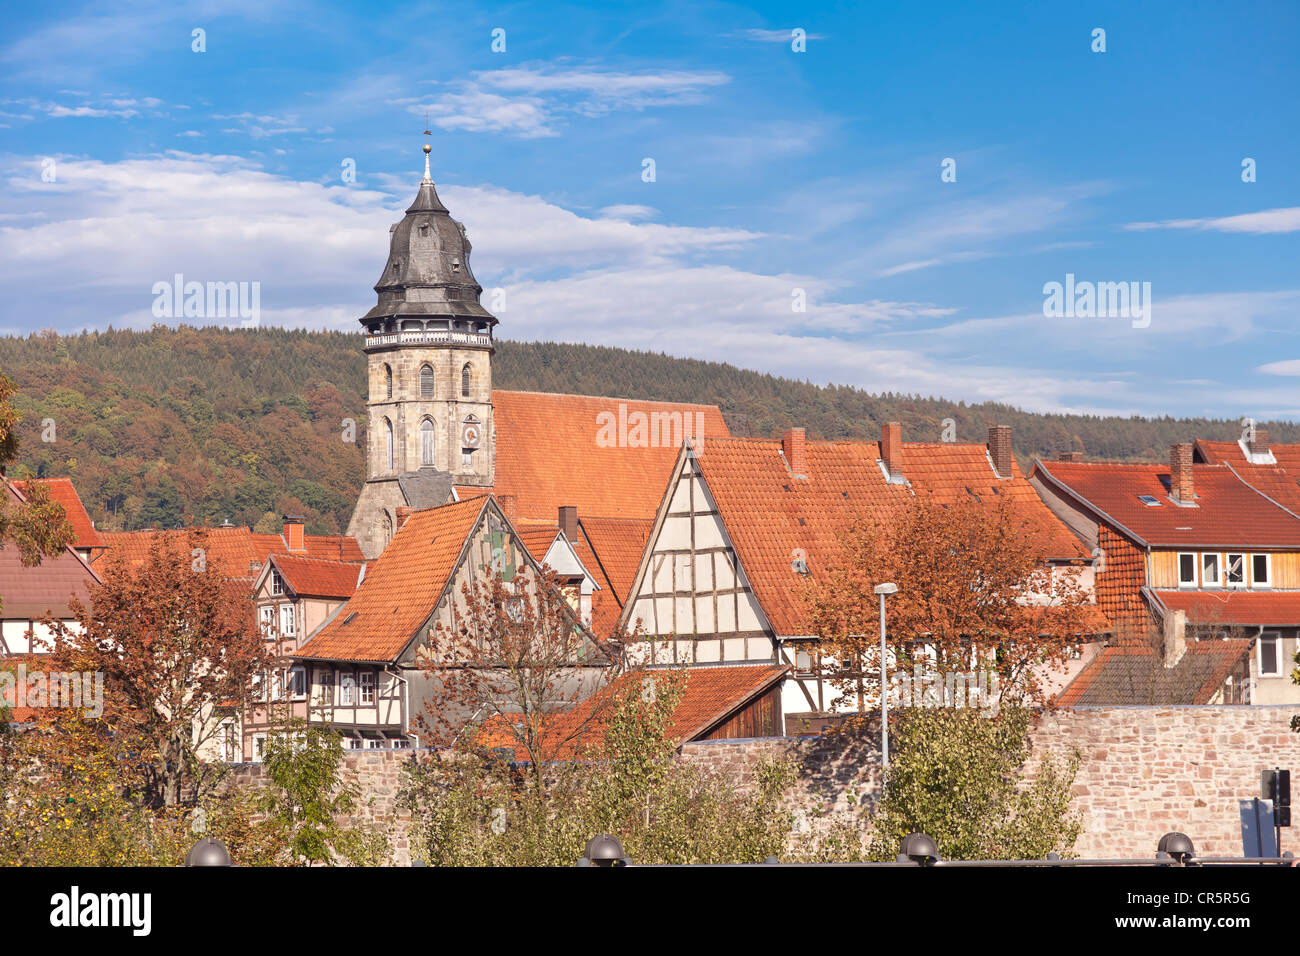 St. Blasius Church, historic town centre, Hannoversch Muenden, Lower Saxony, Germany, Europe - Stock Image